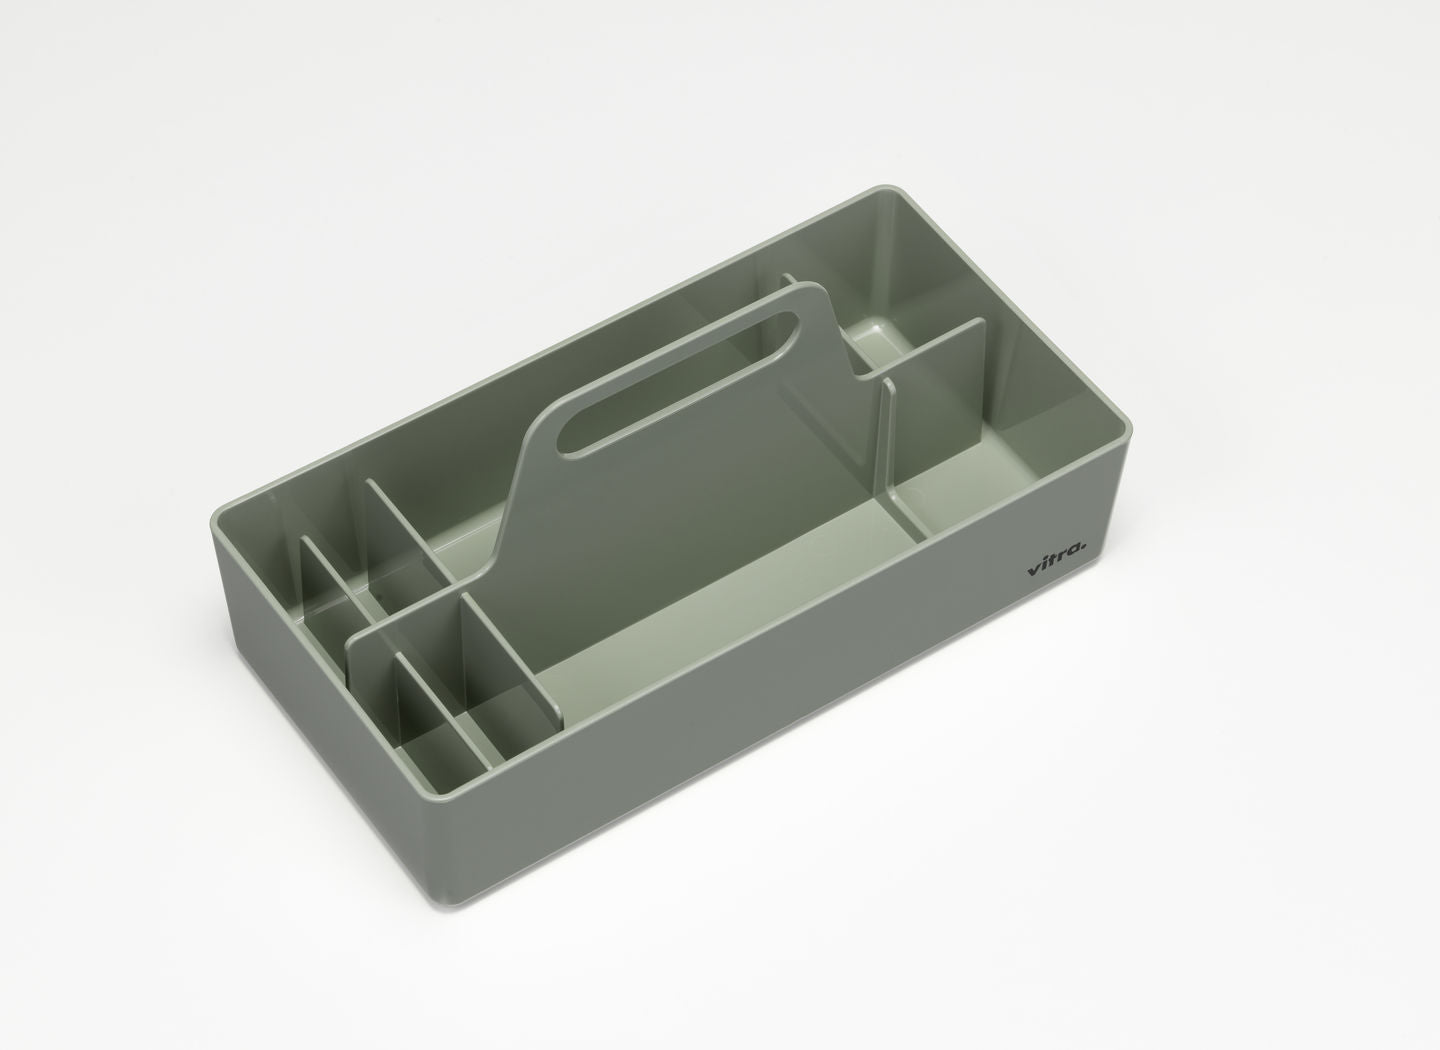 Vitra Toolbox by Arik Levy